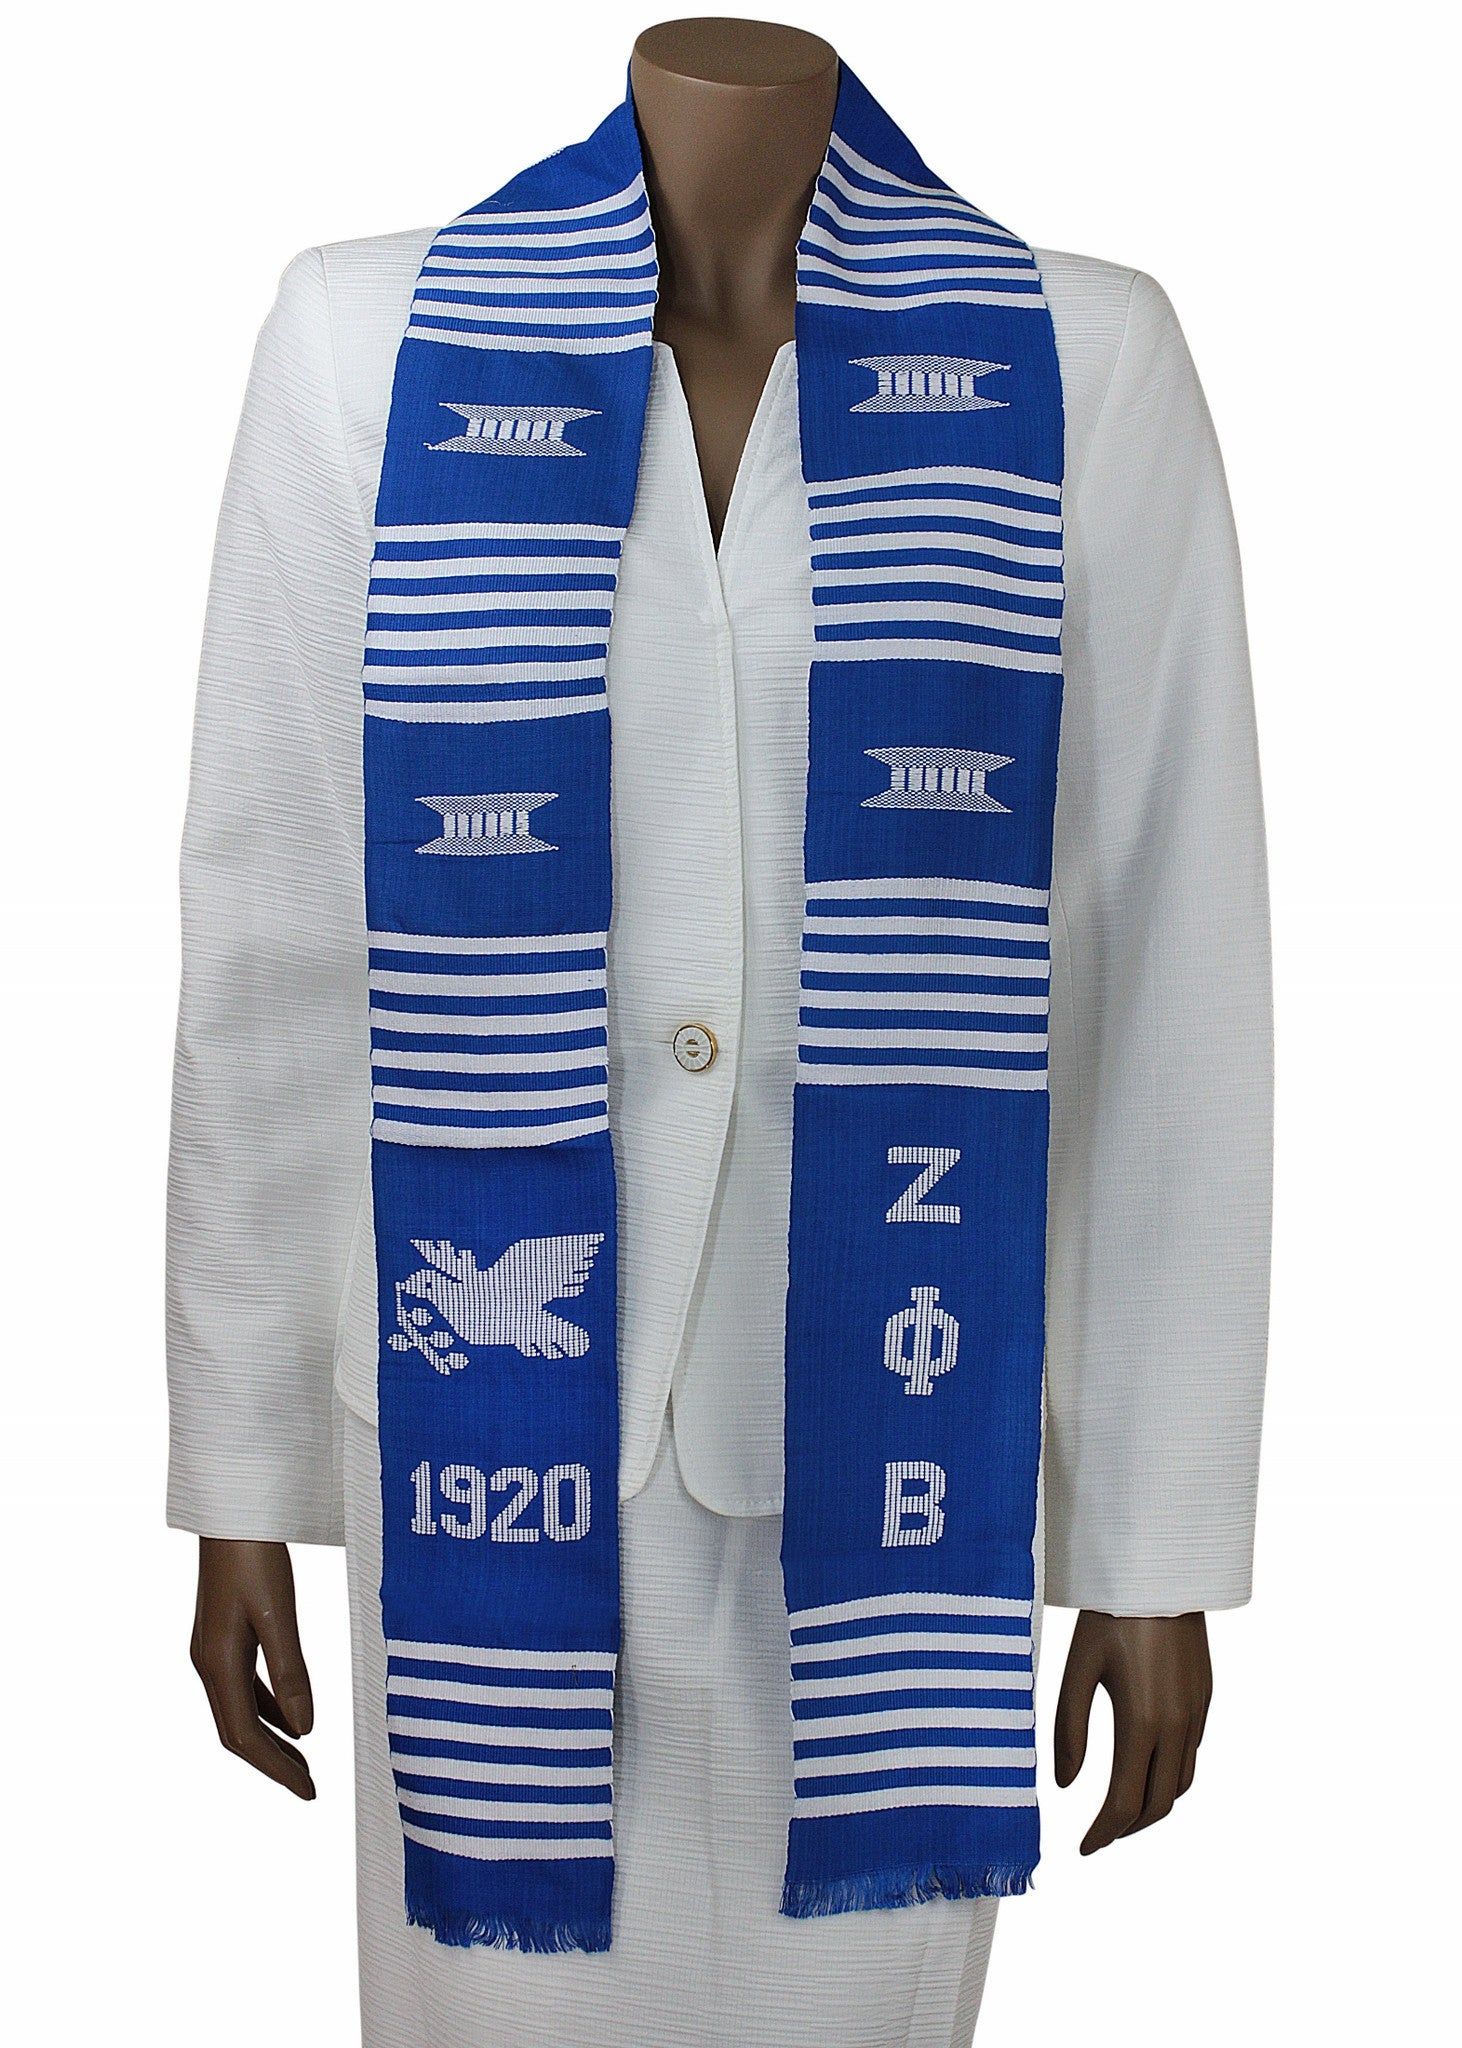 Zeta Phi Beta Blue Dove Kente Stole by Gold Coast Africa